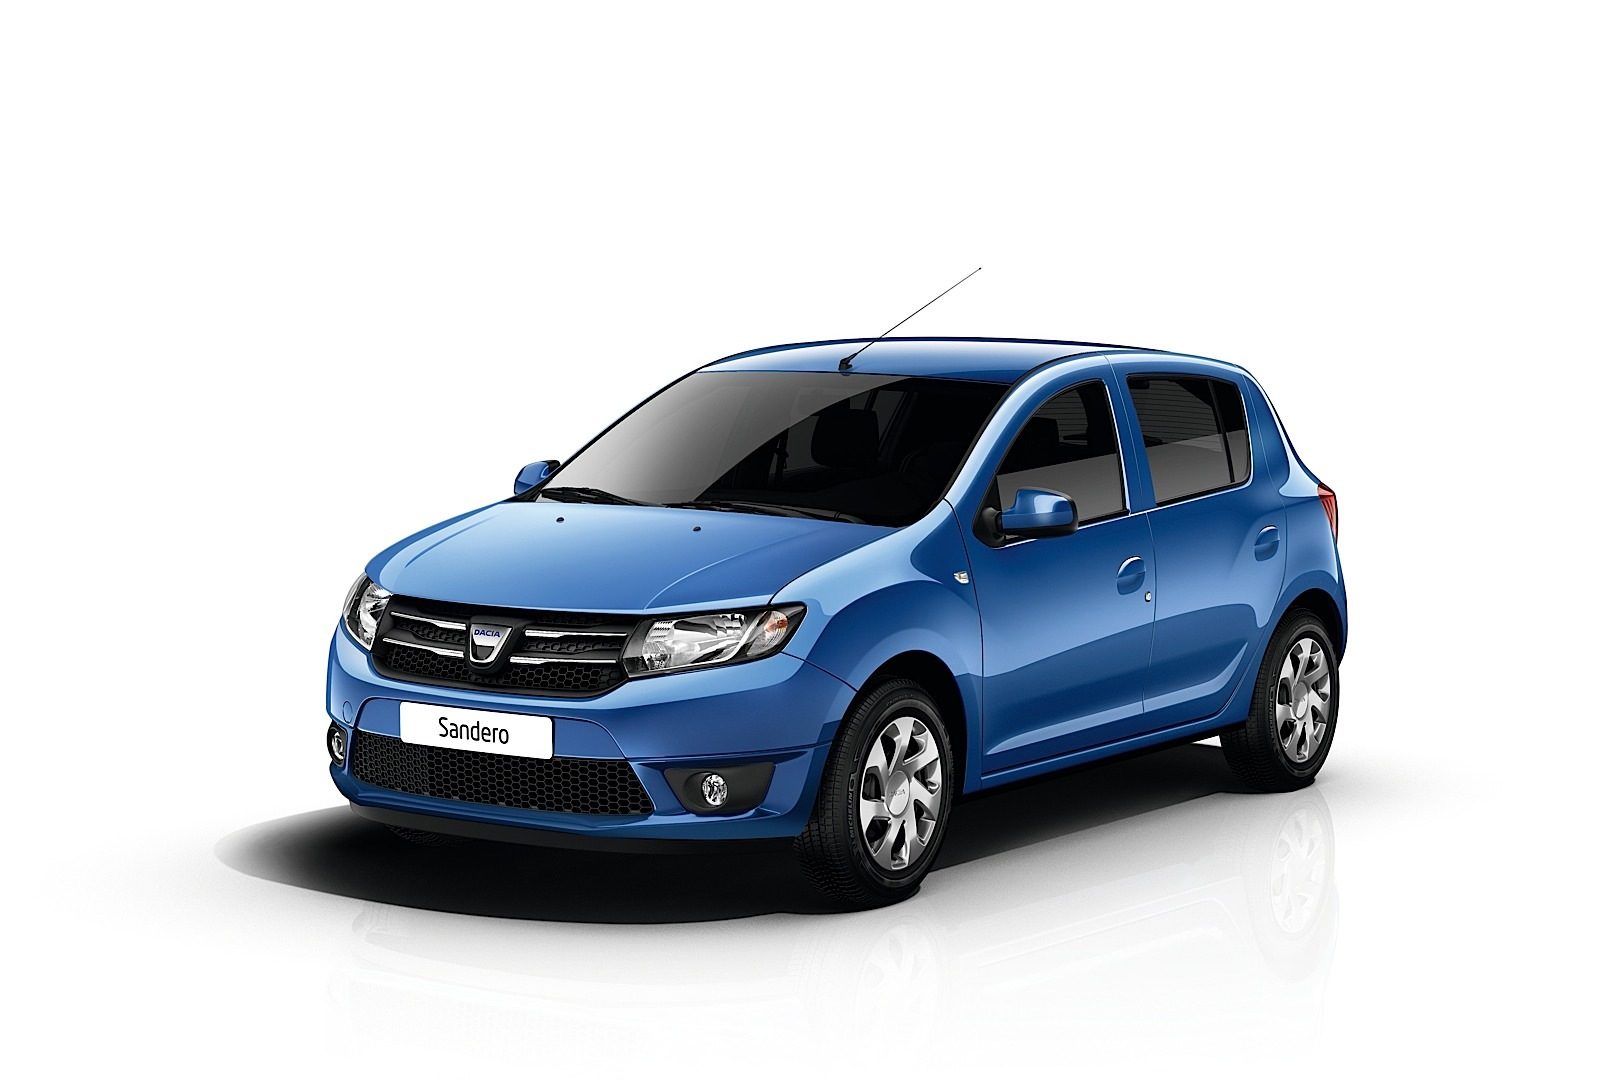 dacia logan pictures #11